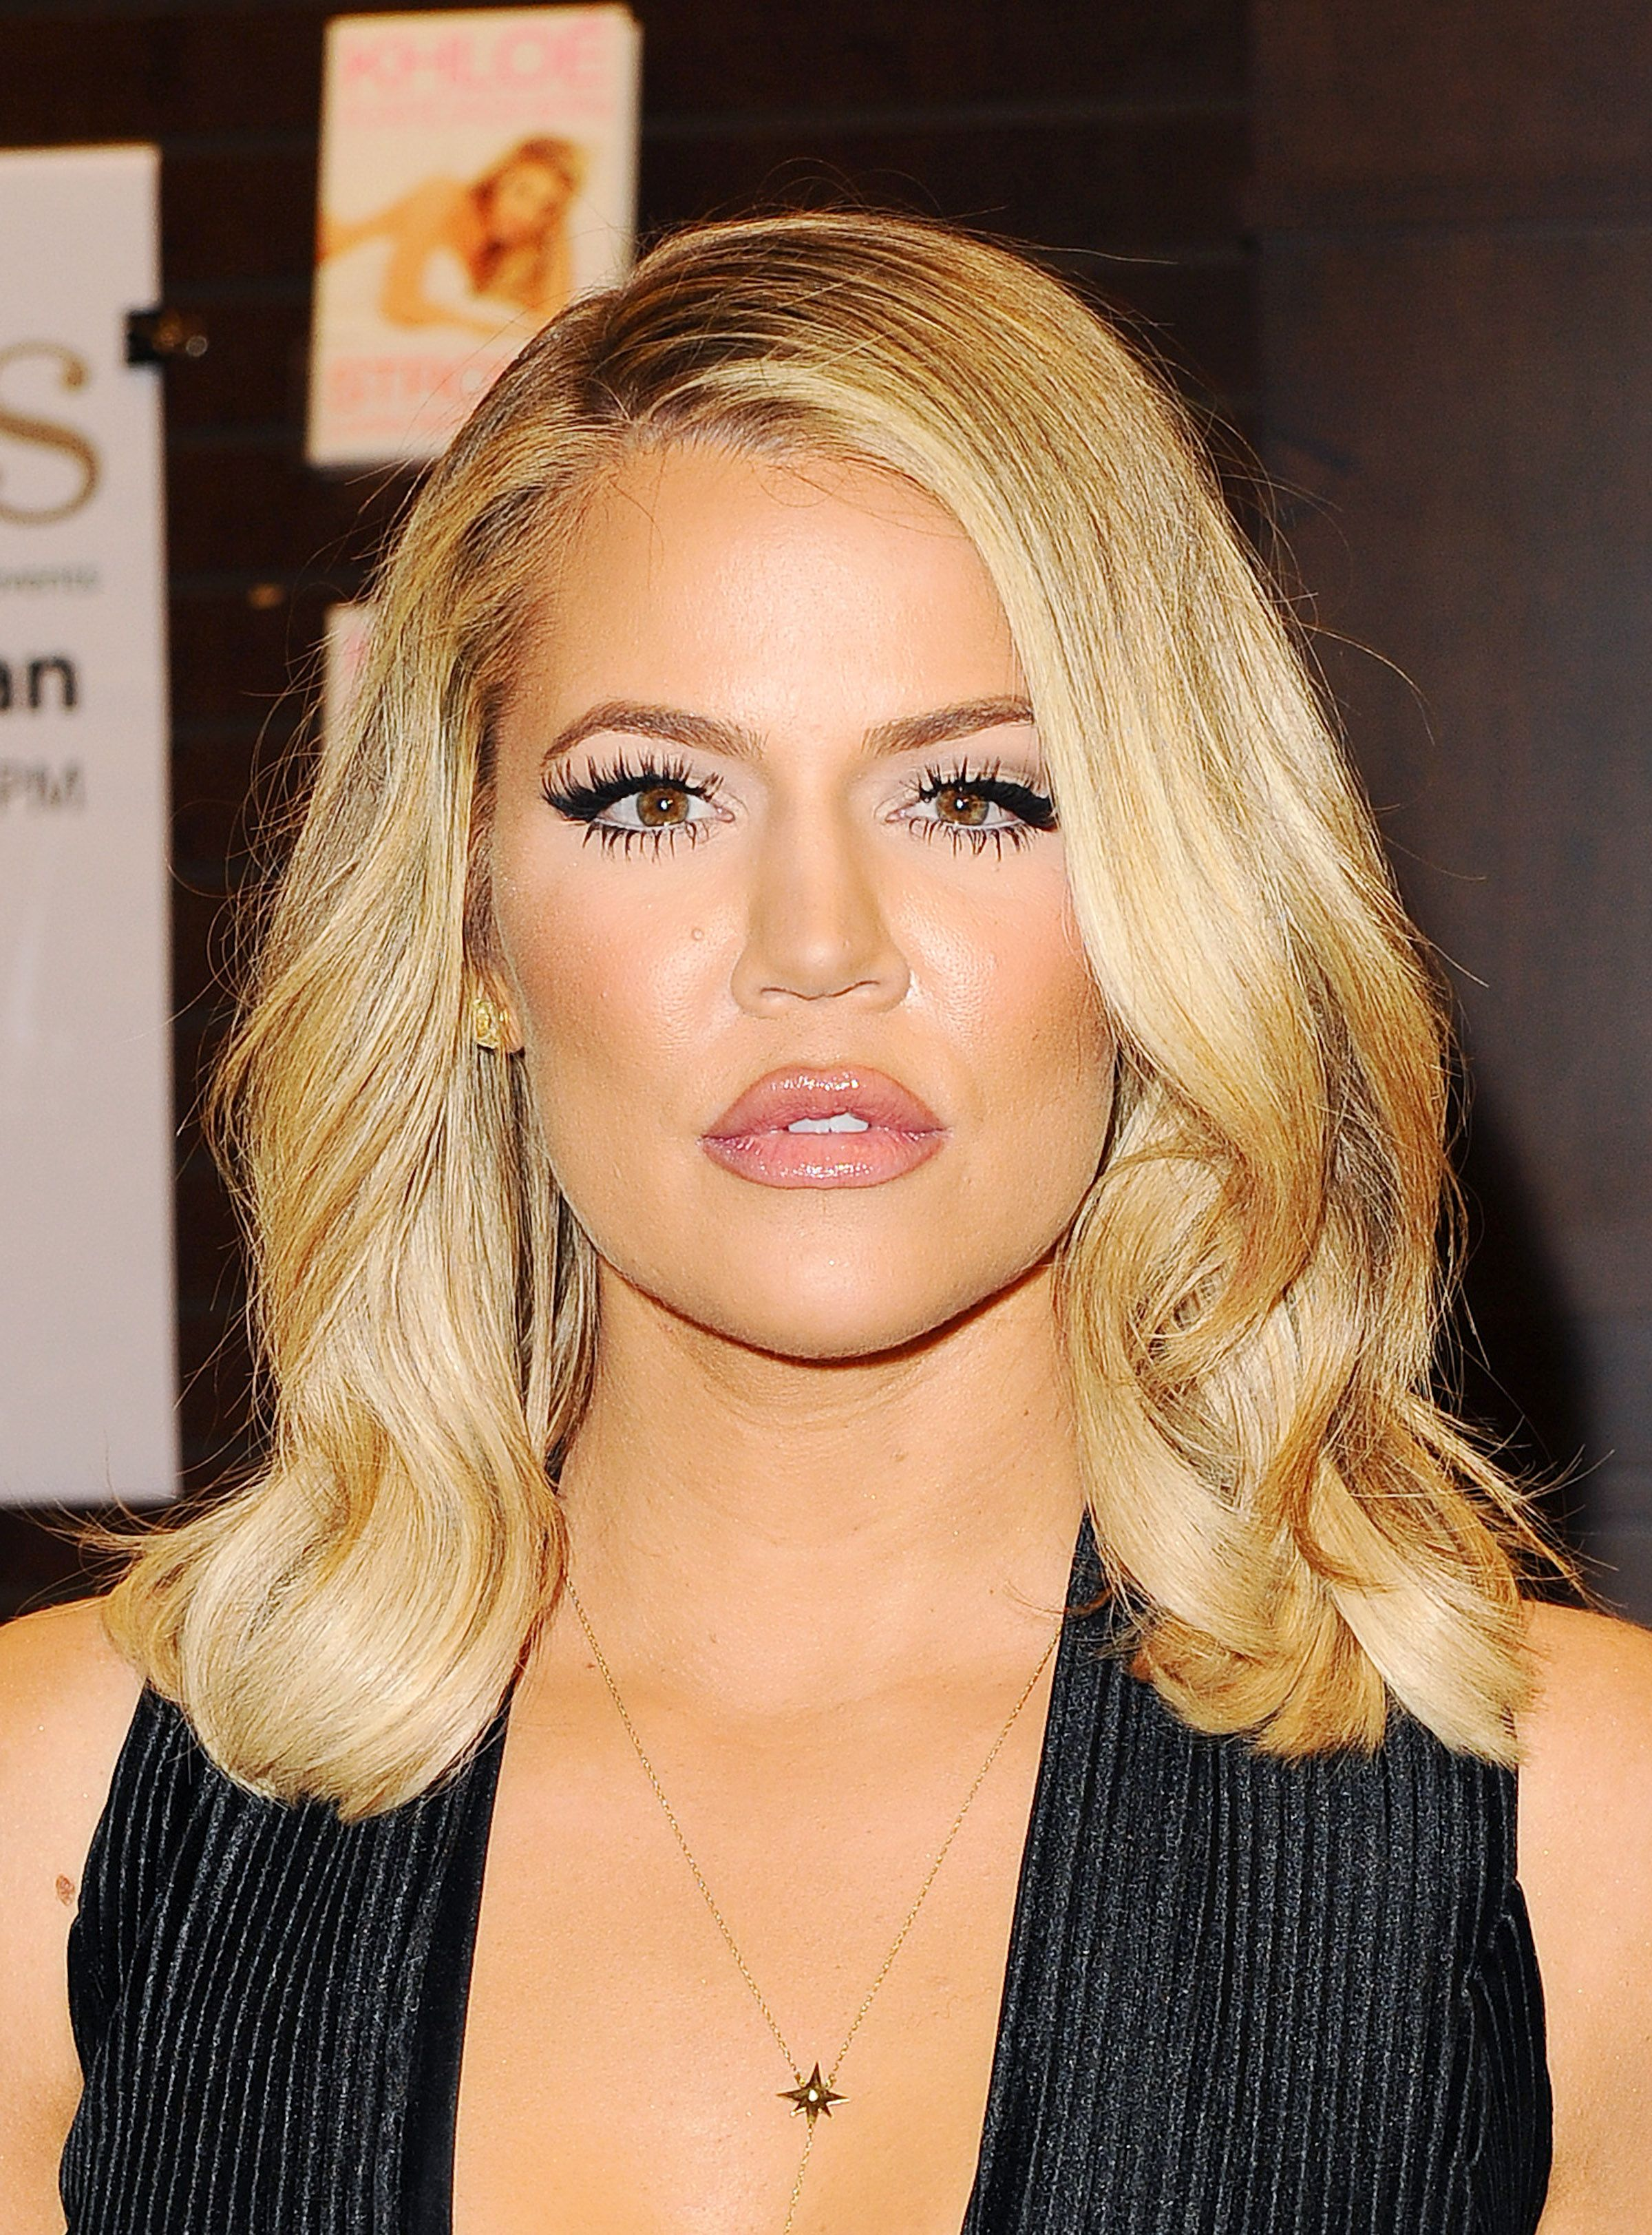 Khloe Kardashian has got very honest about the most difficult time of her life...